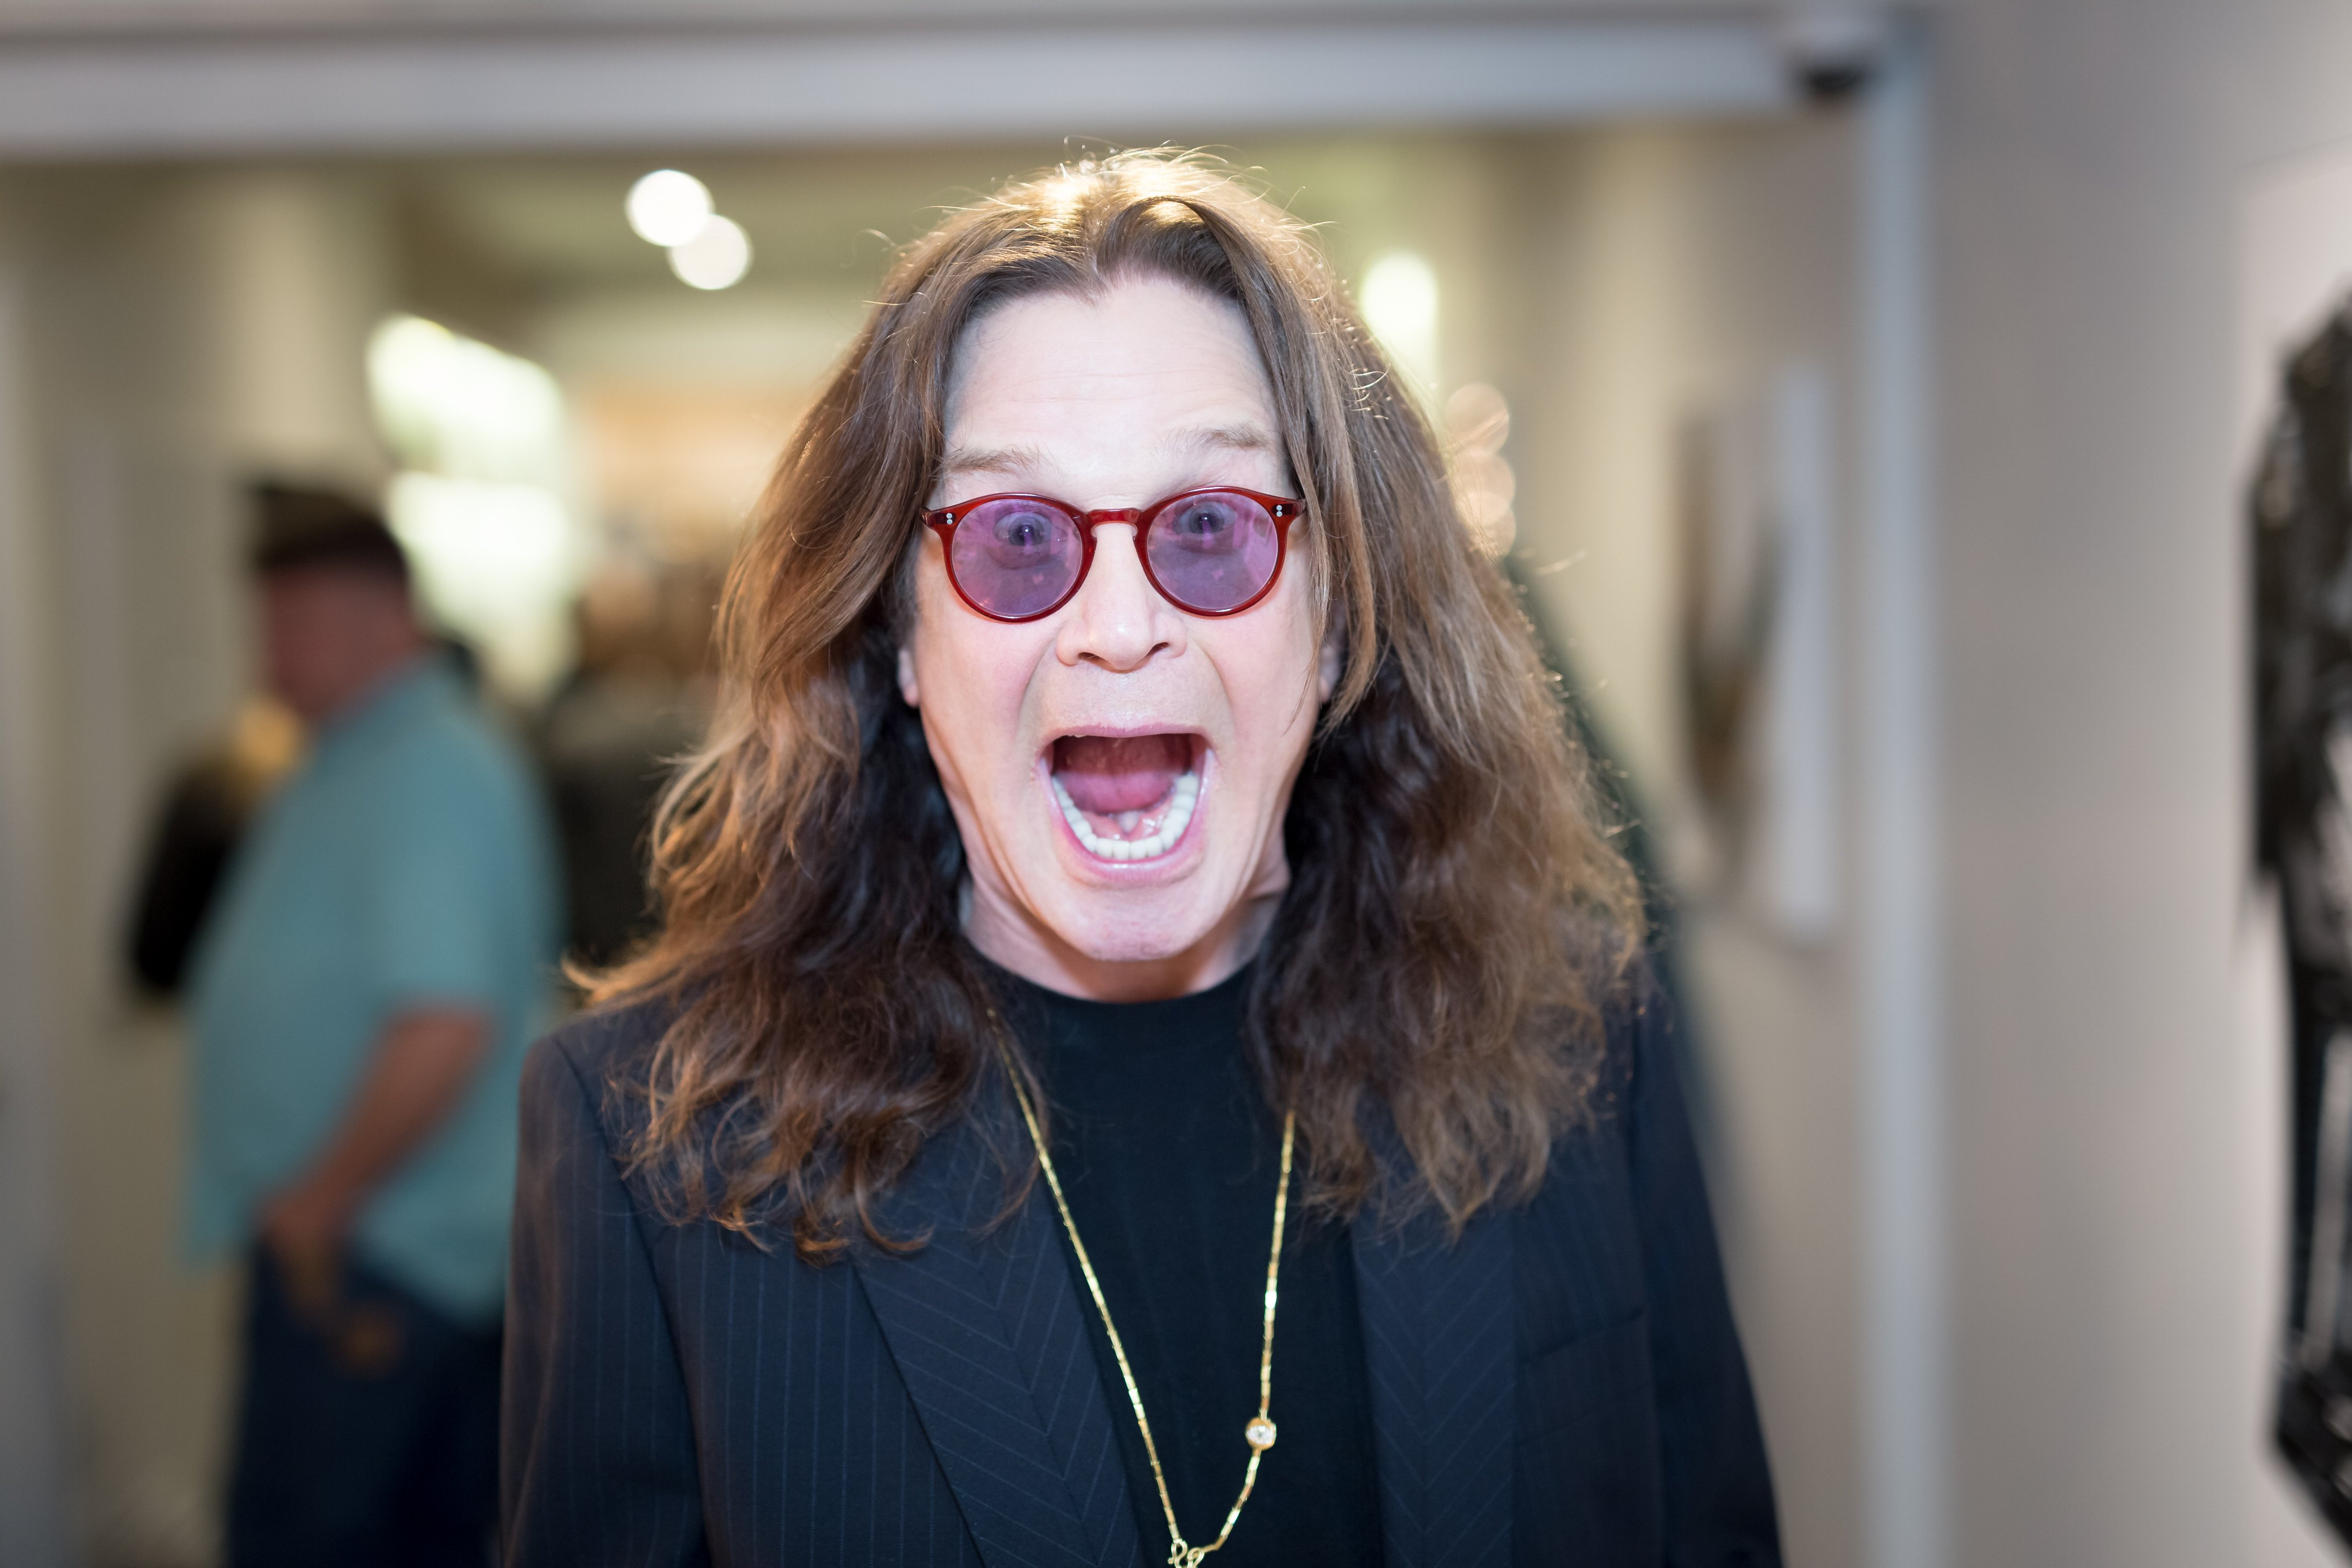 Ozzy Osbourne on September 28, 2017 in Los Angeles, California | Source: Getty Images